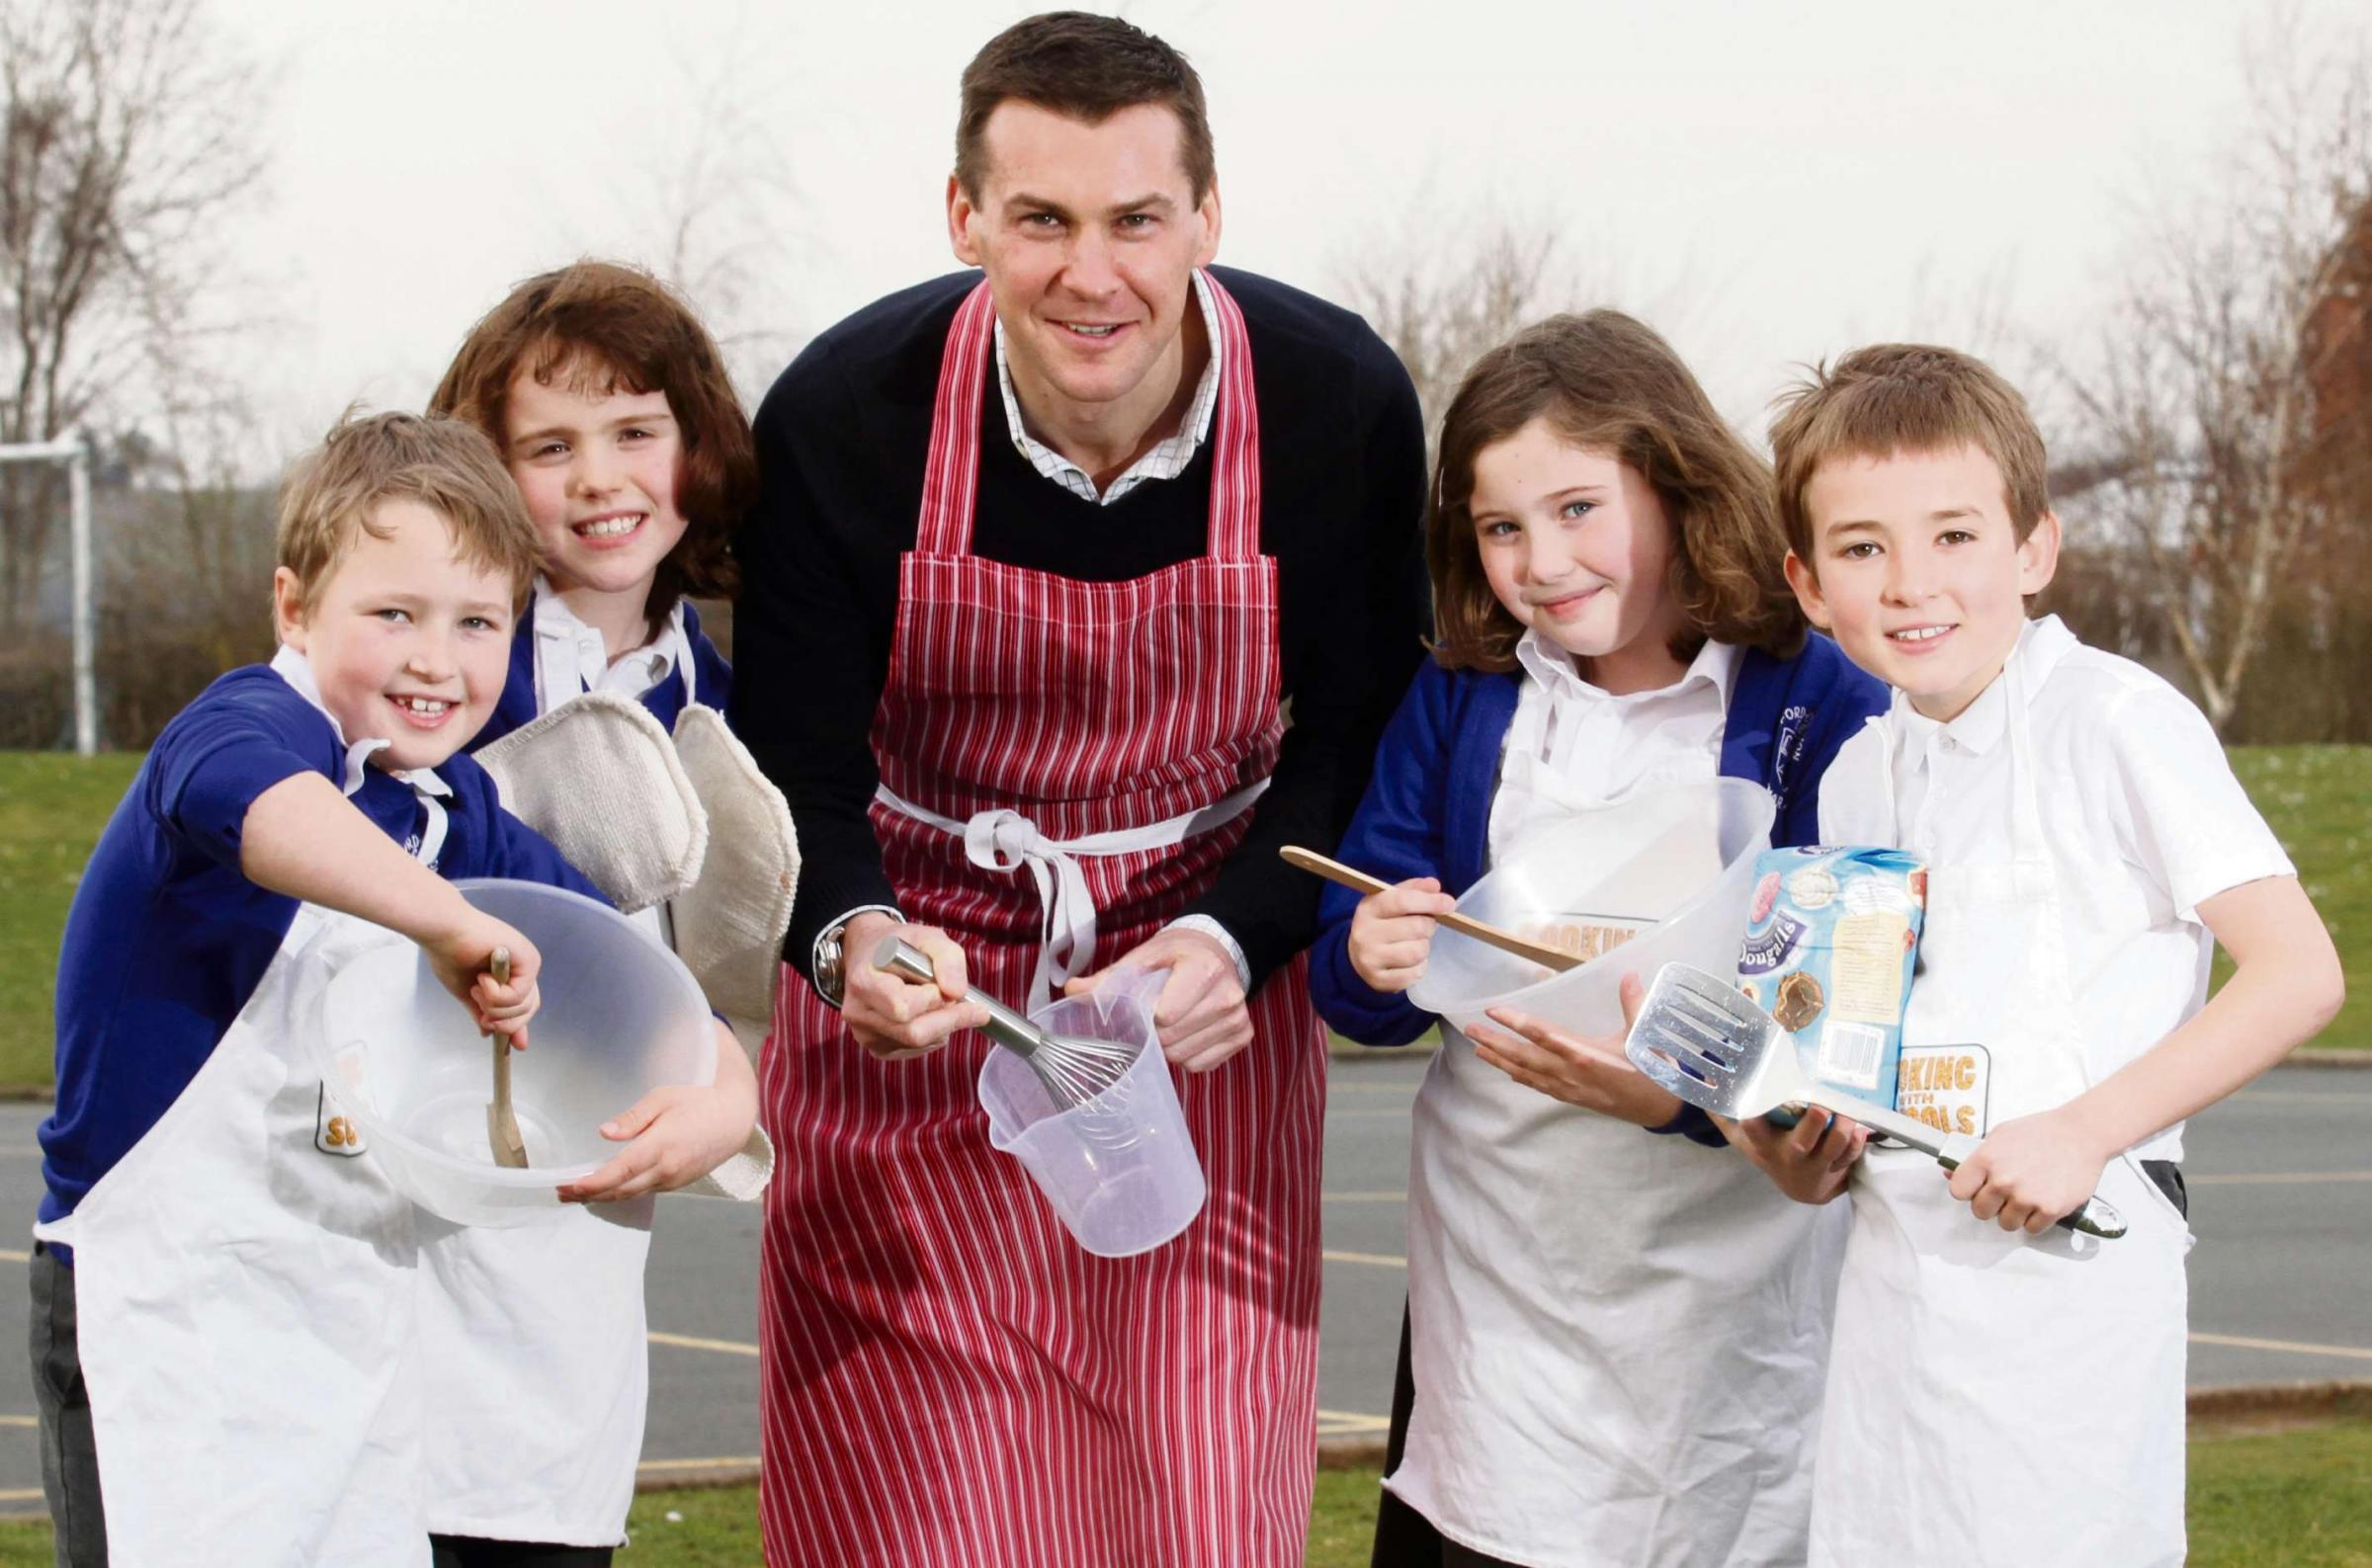 School cookery club inspires next generation chefs